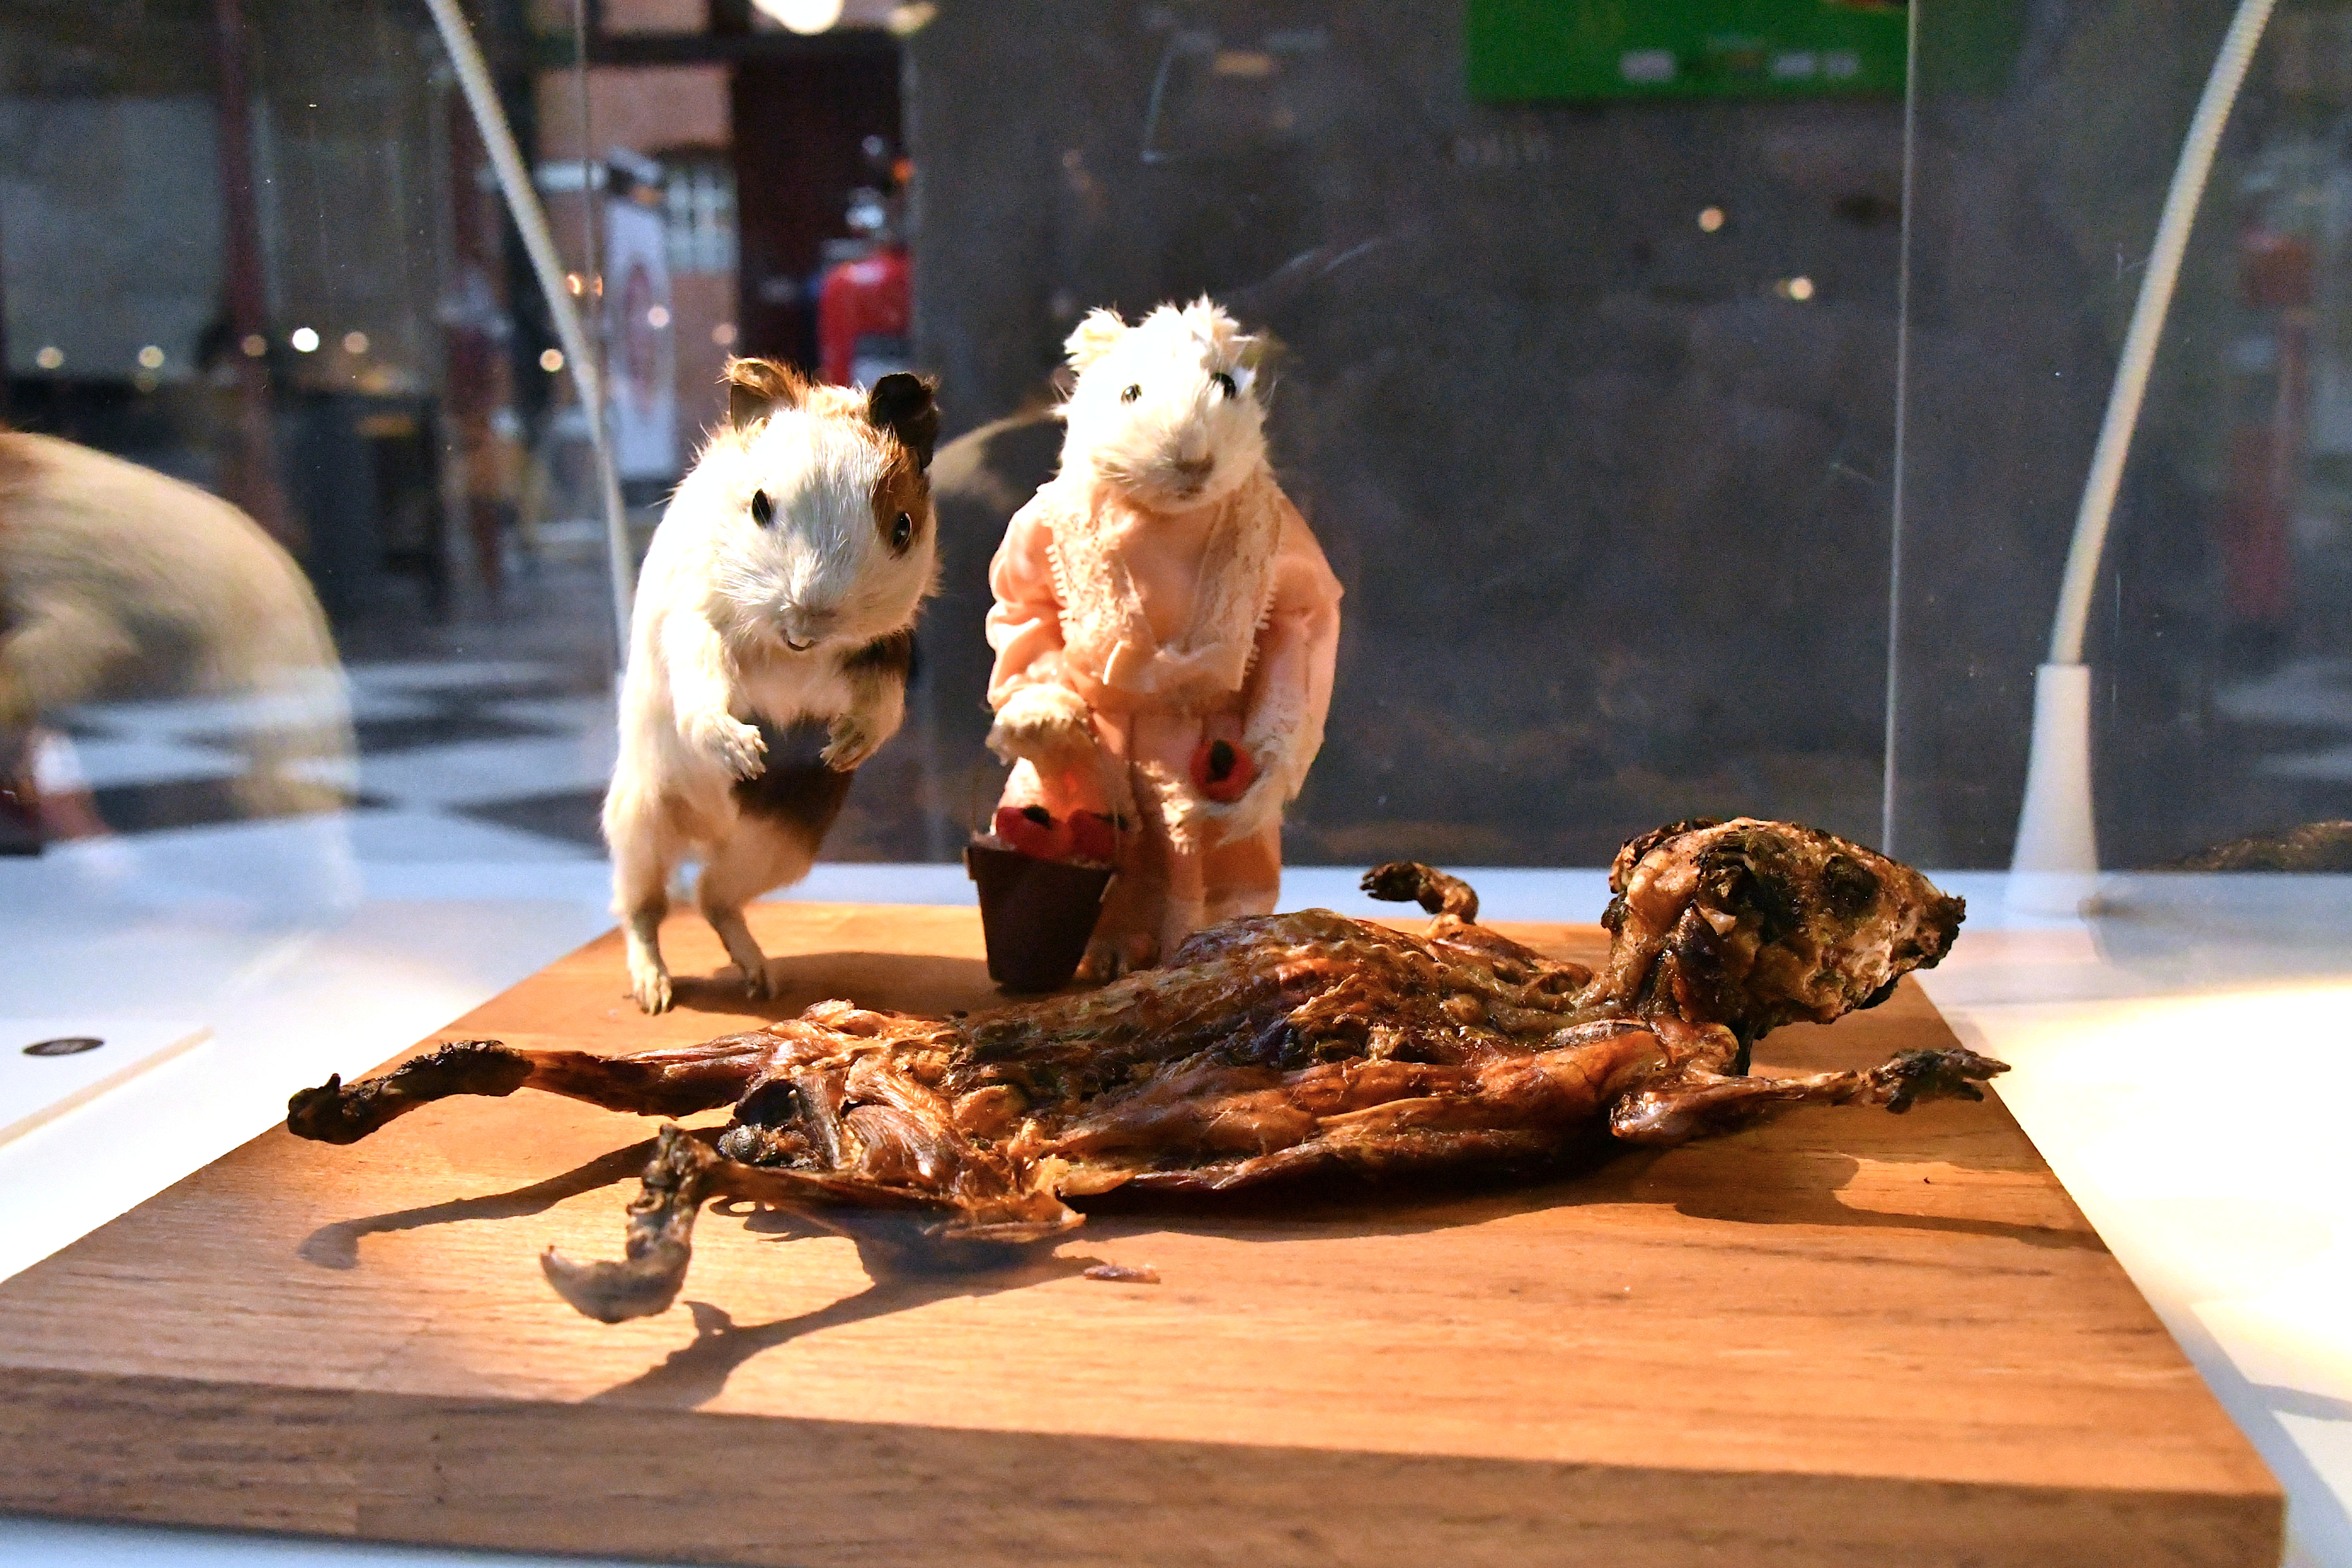 Guinea pigs, served as a traditional Peruvian Andes food, are displayed at the Disgusting Food Museum in Malmo